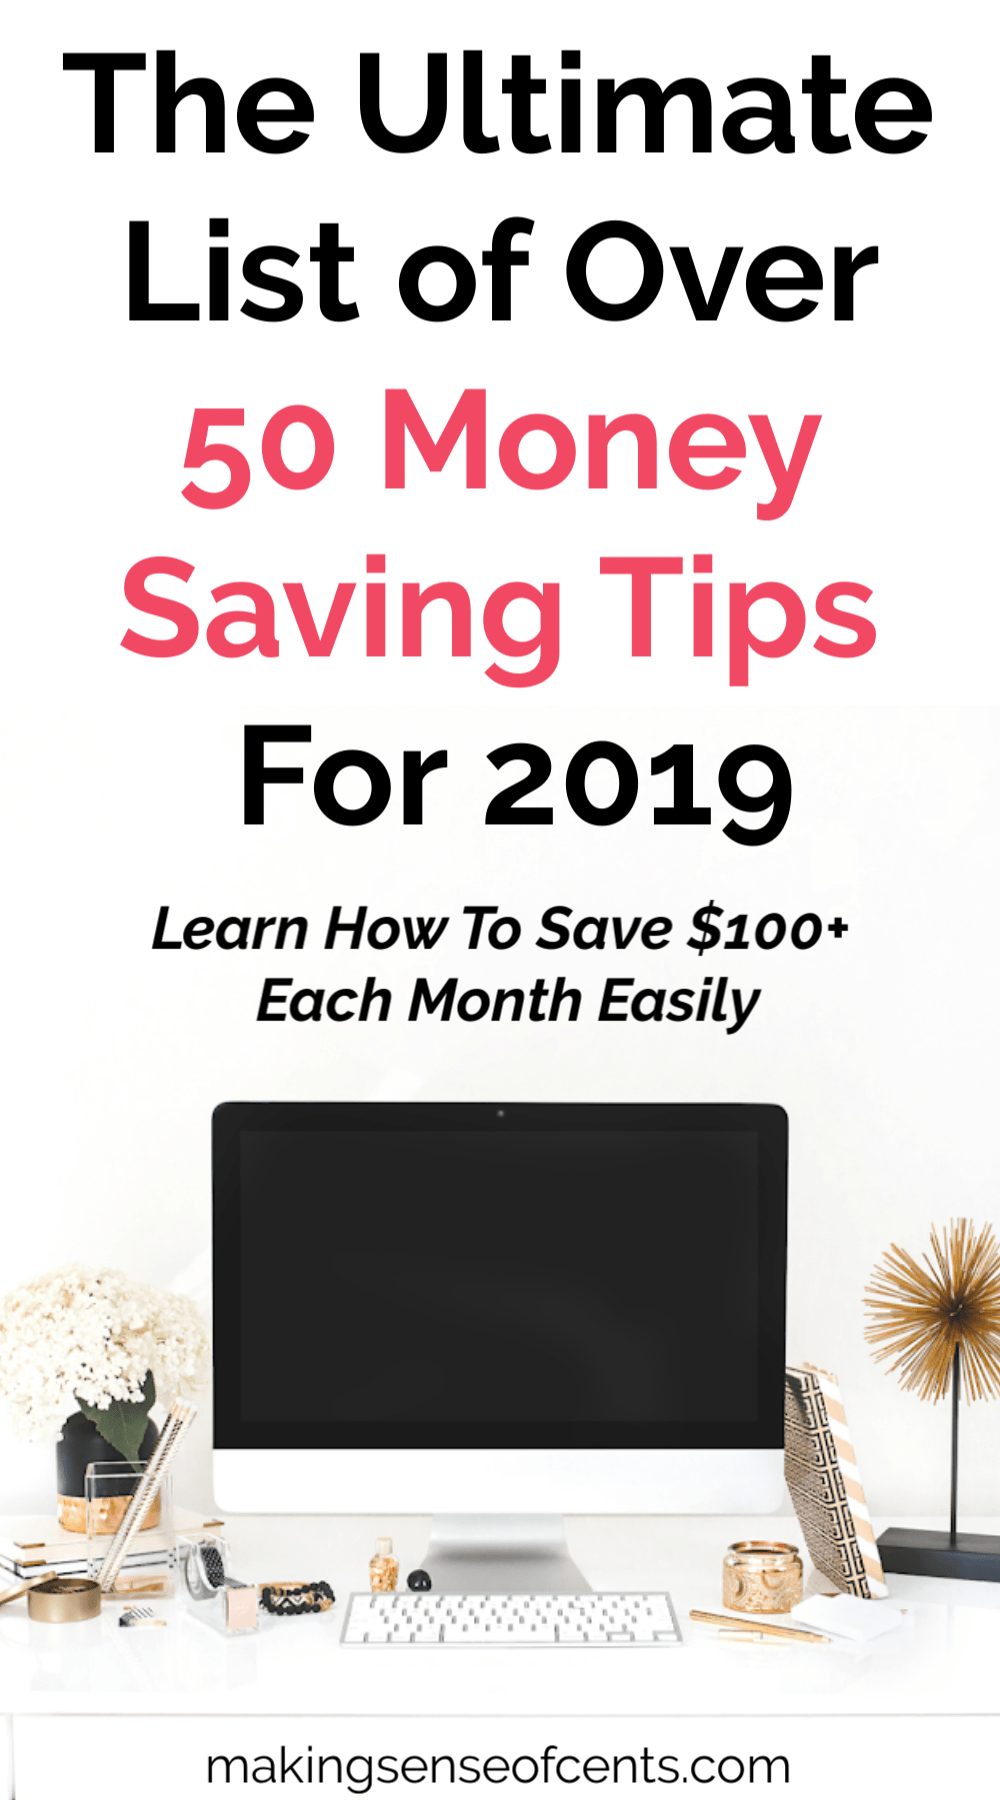 The Ultimate List of Over 50 Money Saving Tips For 2018